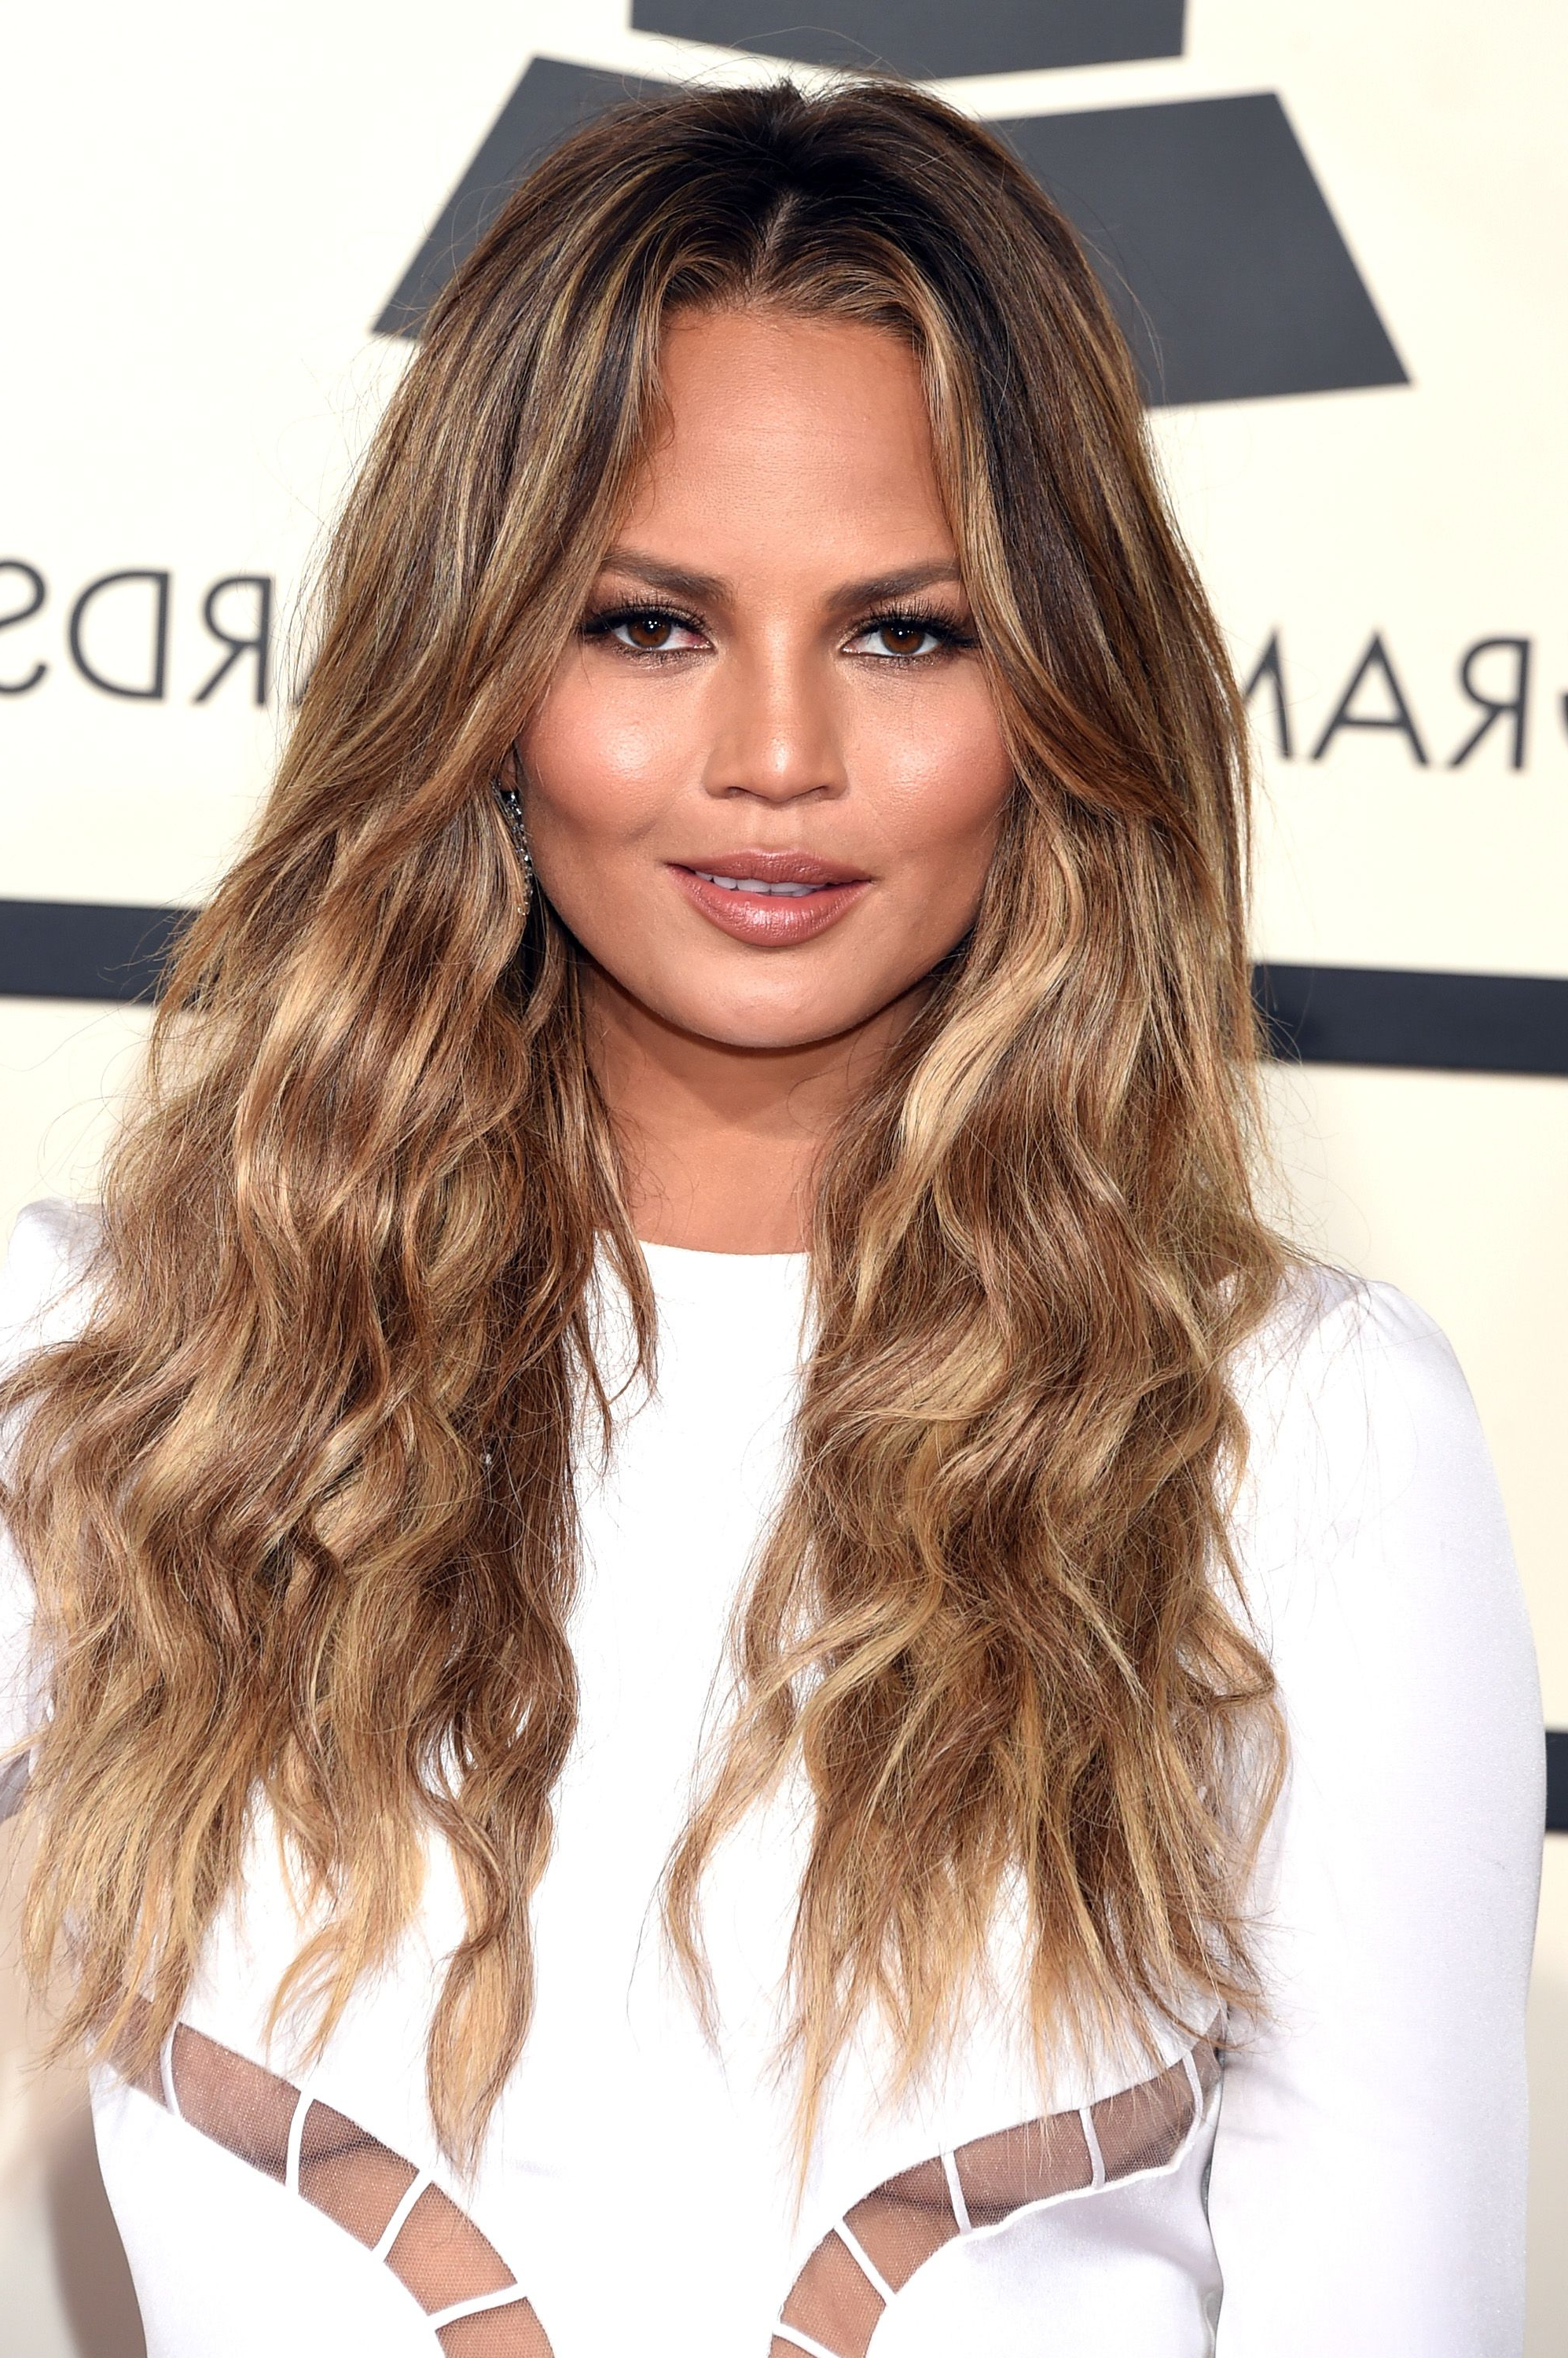 40 Best Layered Haircuts, Hairstyles & Trends For 2018 Pertaining To Latest Long Layered Waves Hairstyles (View 6 of 20)